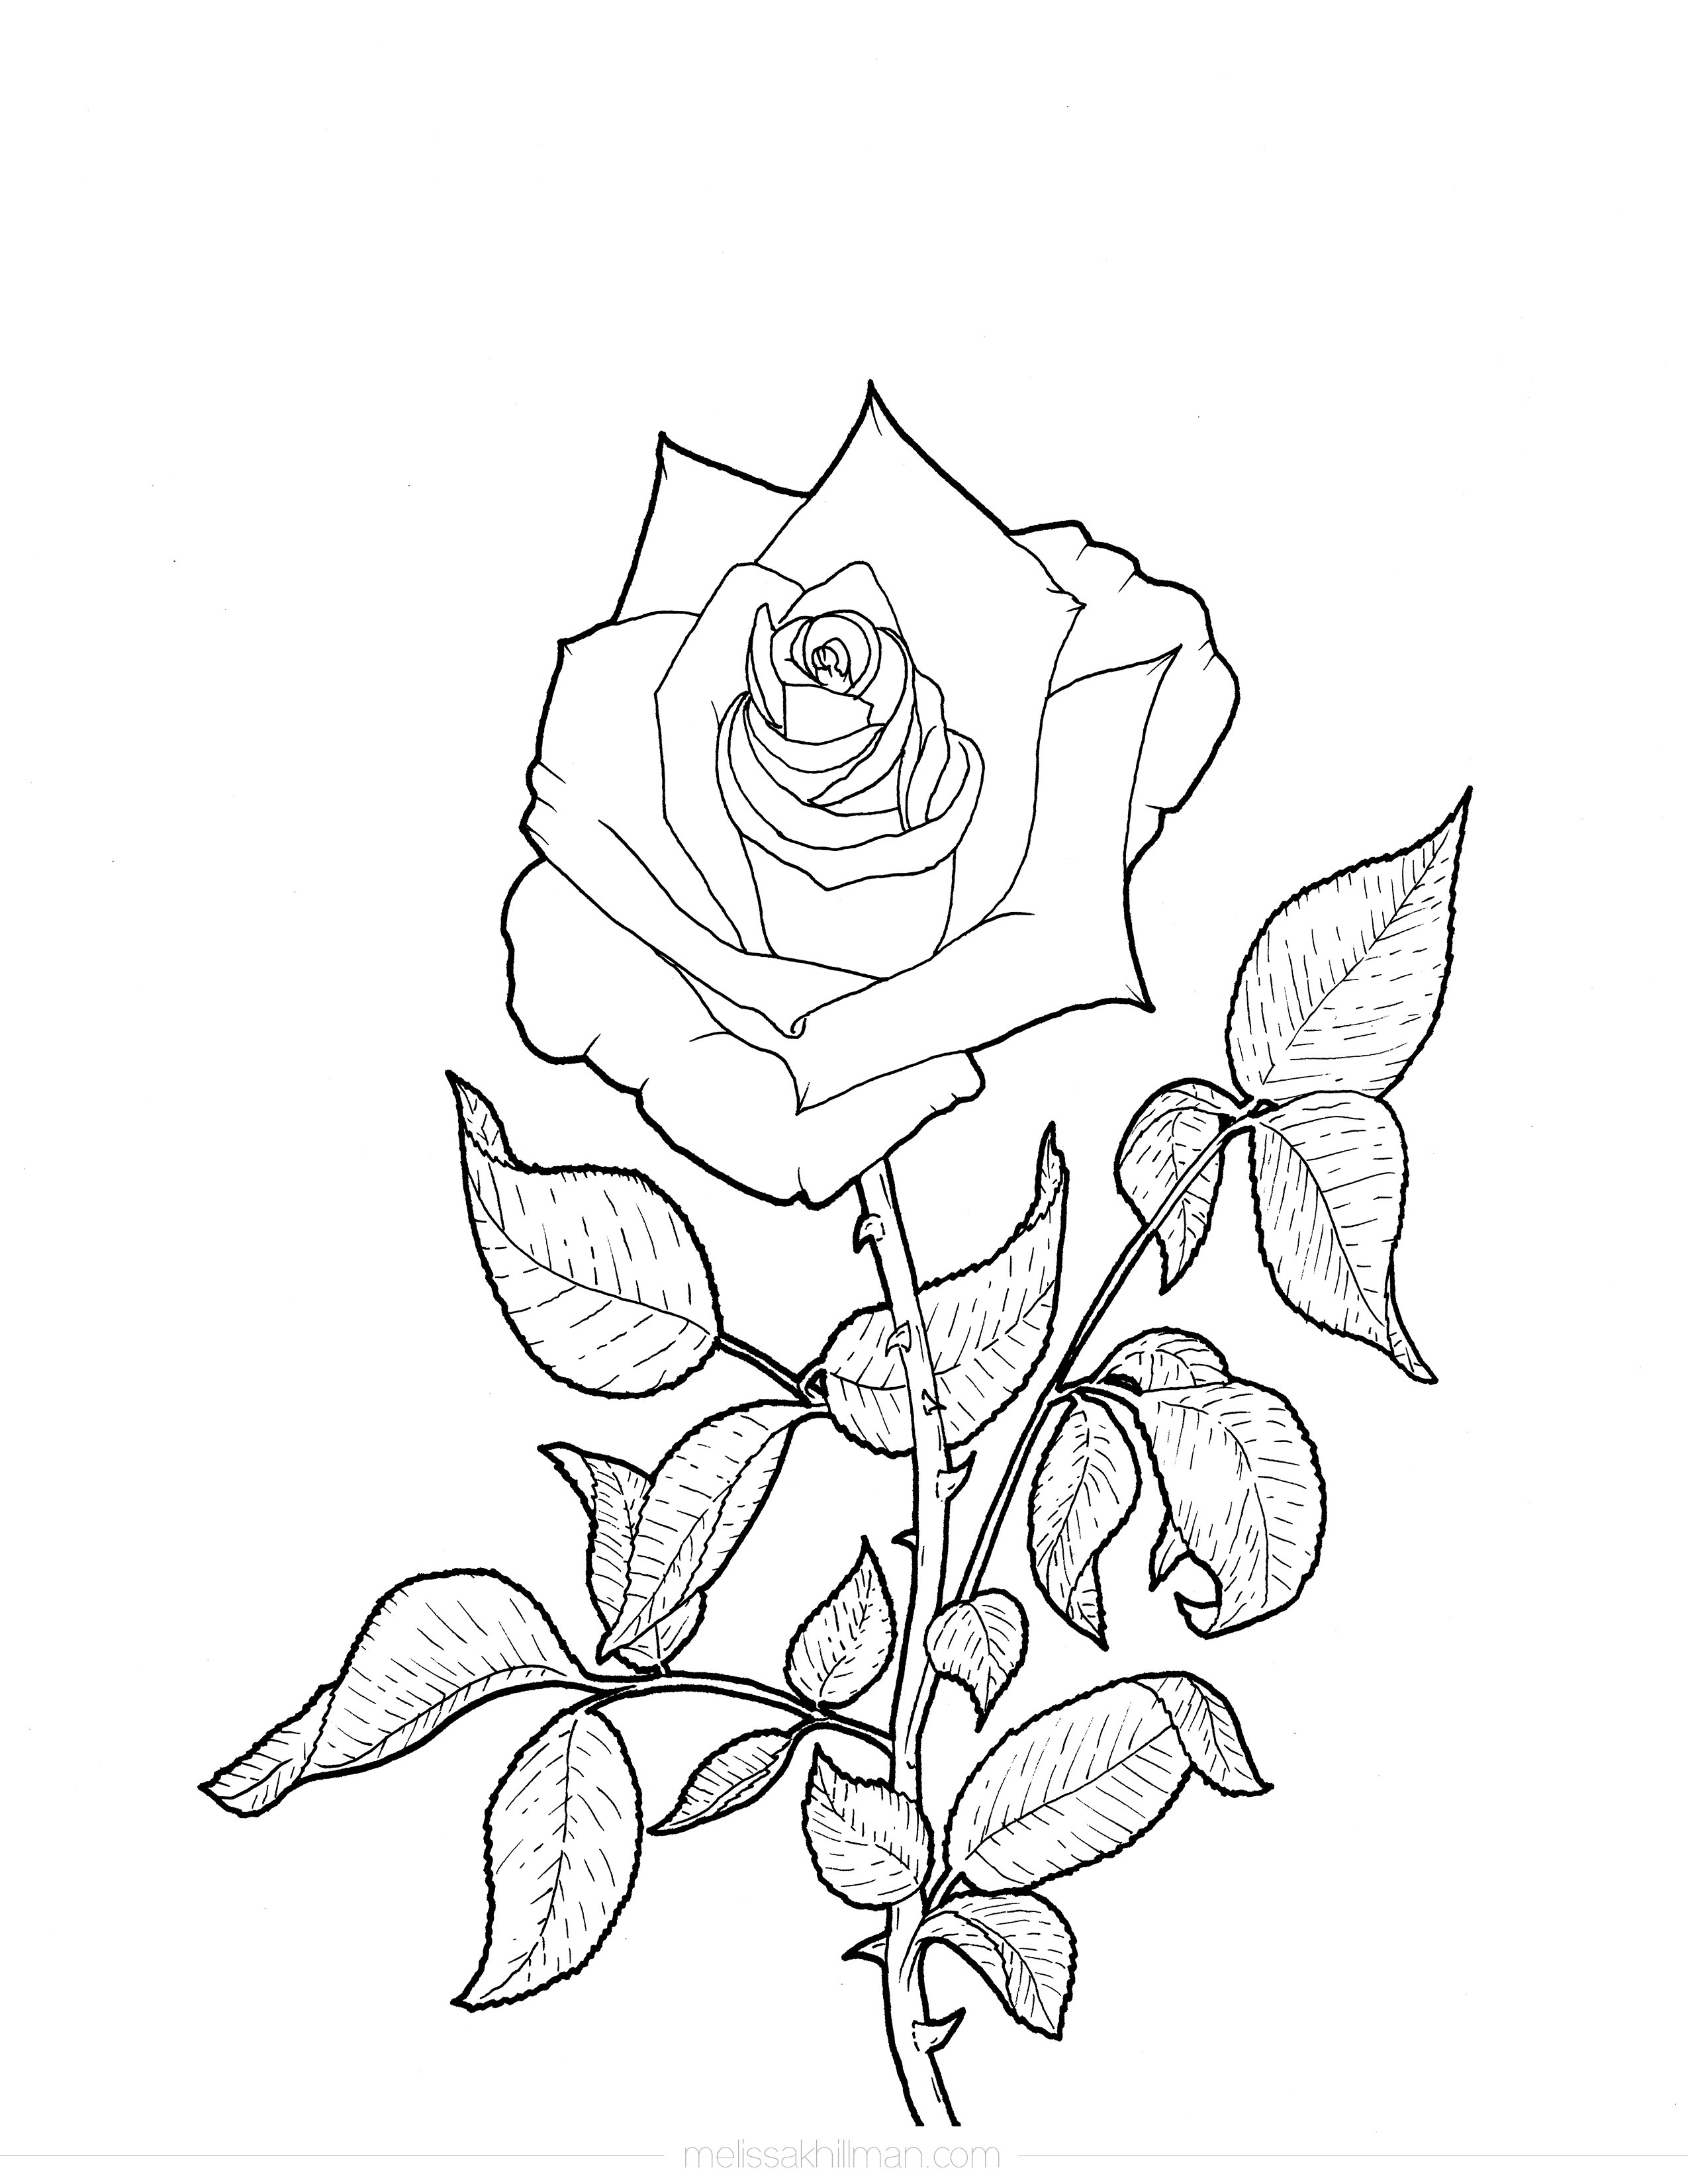 coloring picture rose rose coloring page rose picture coloring